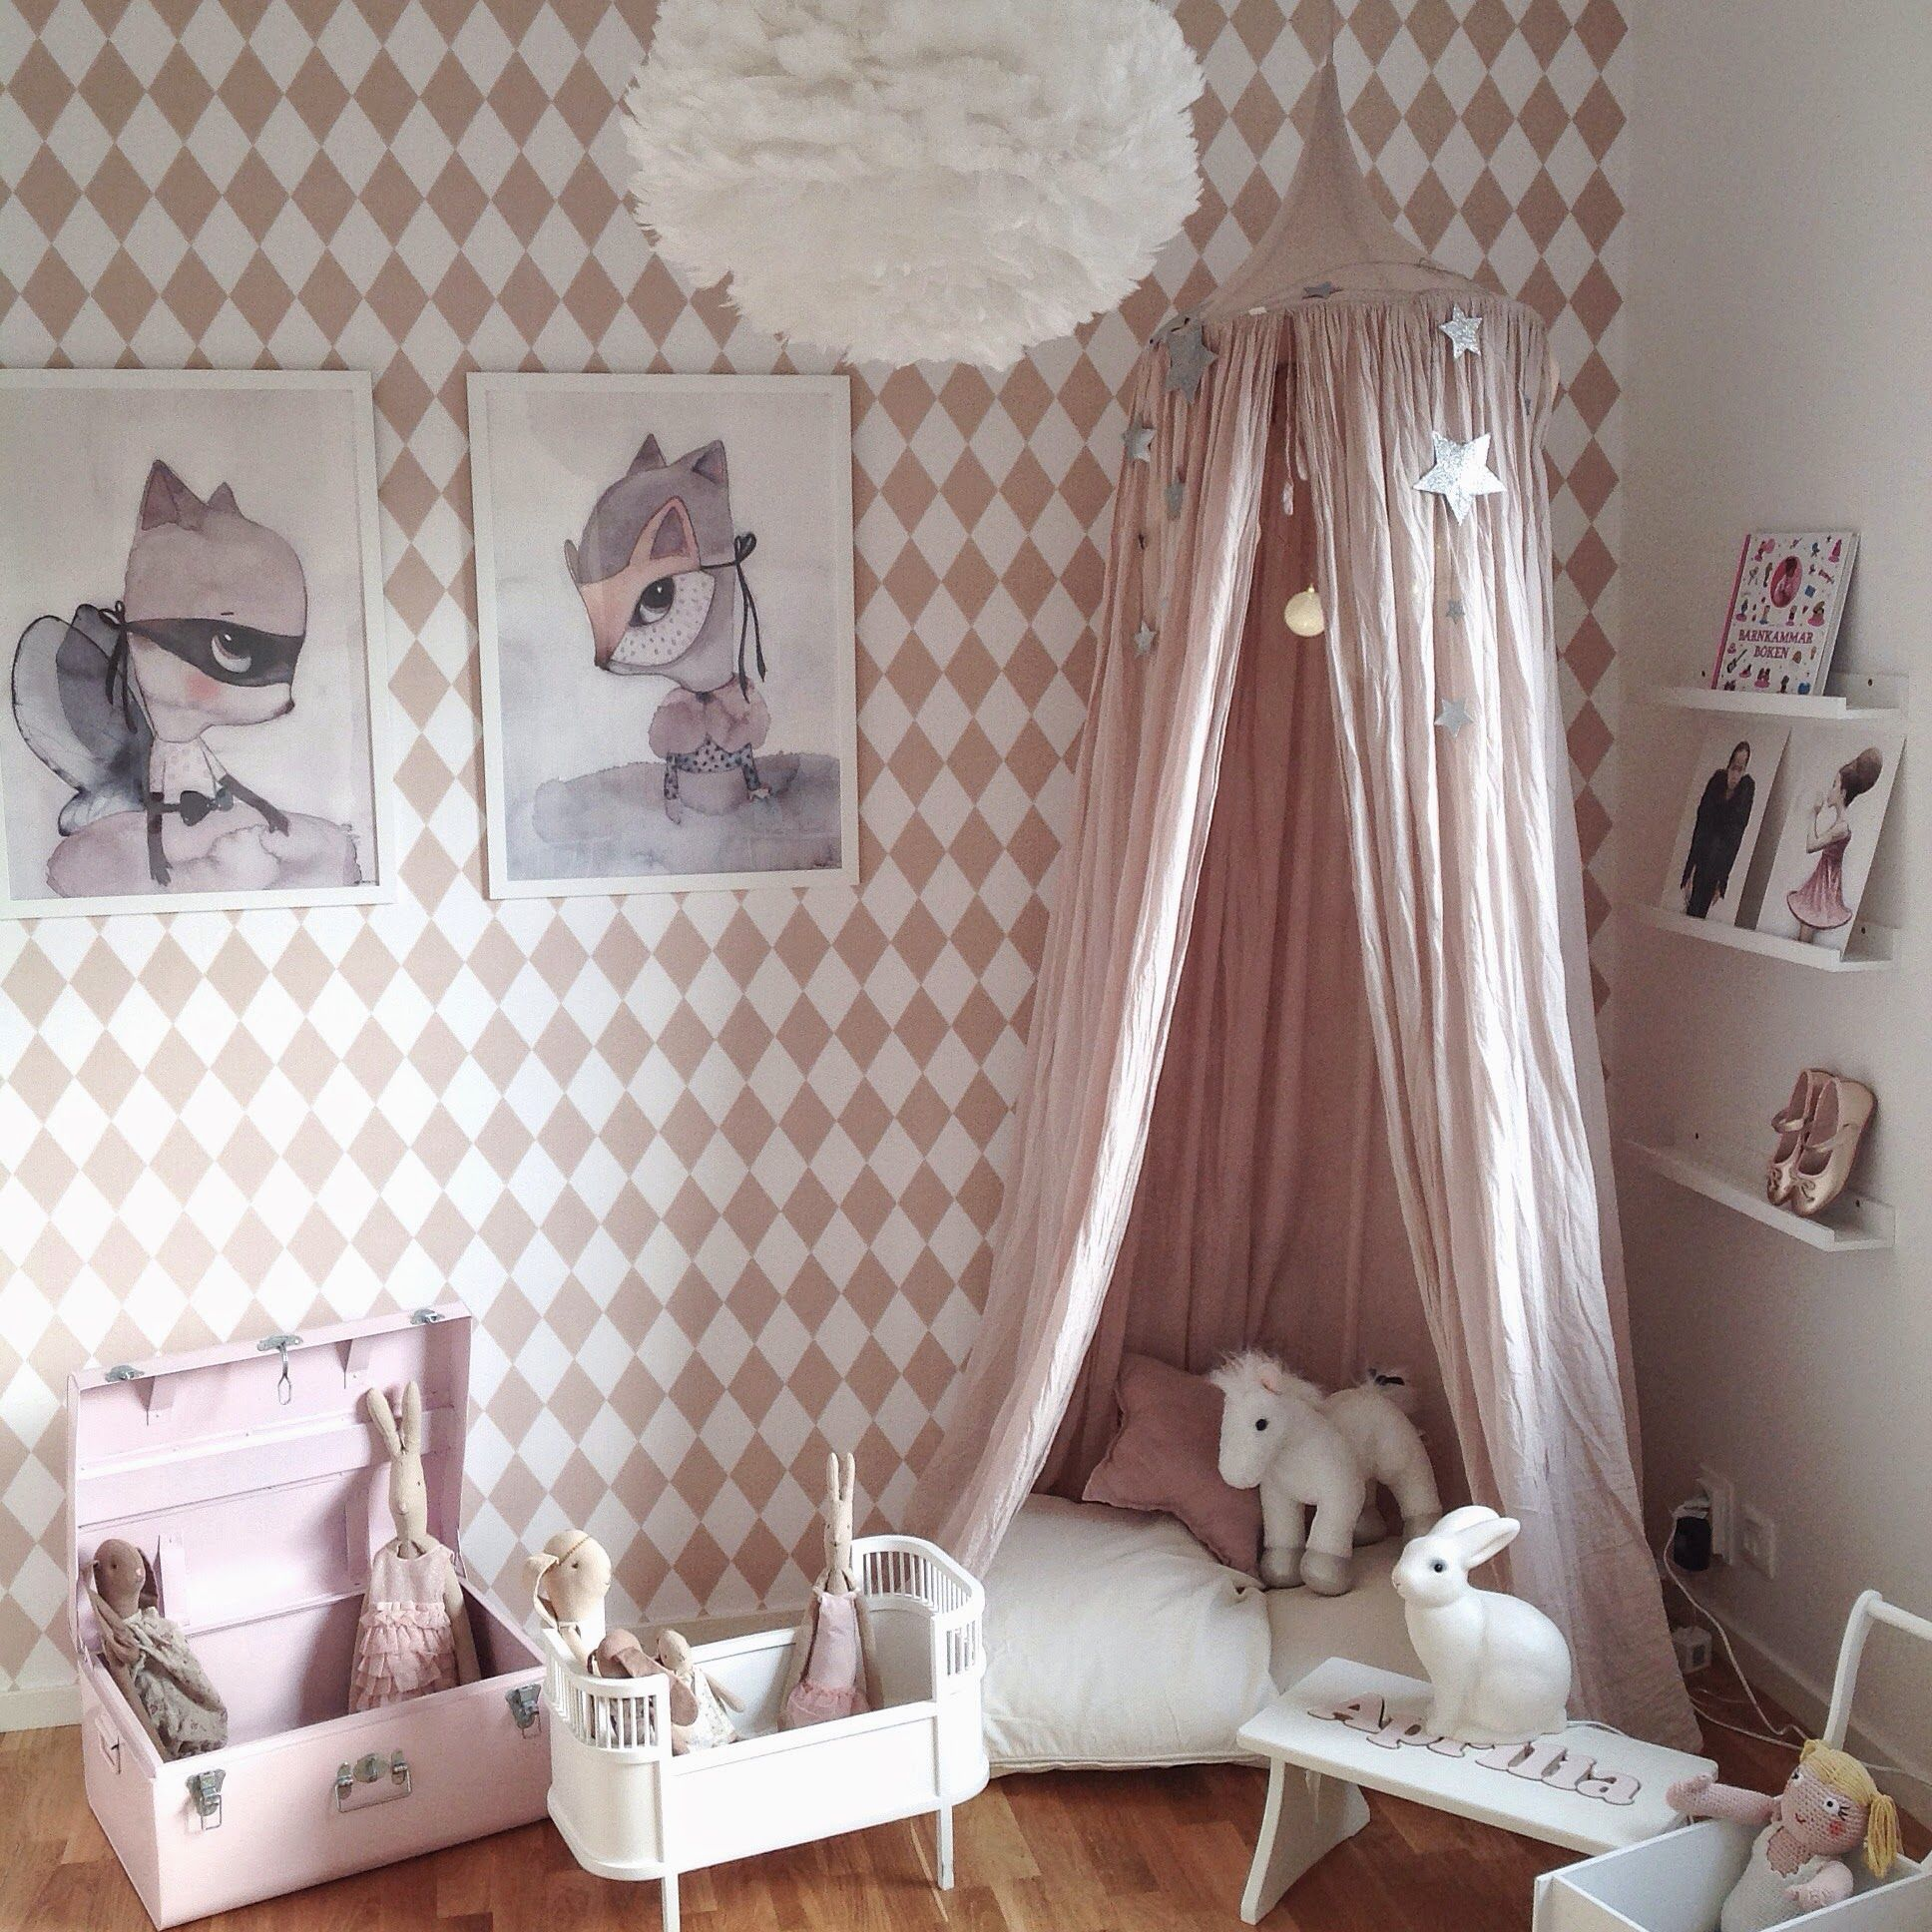 fashionistas catwalk: pink and white little girl's room | that